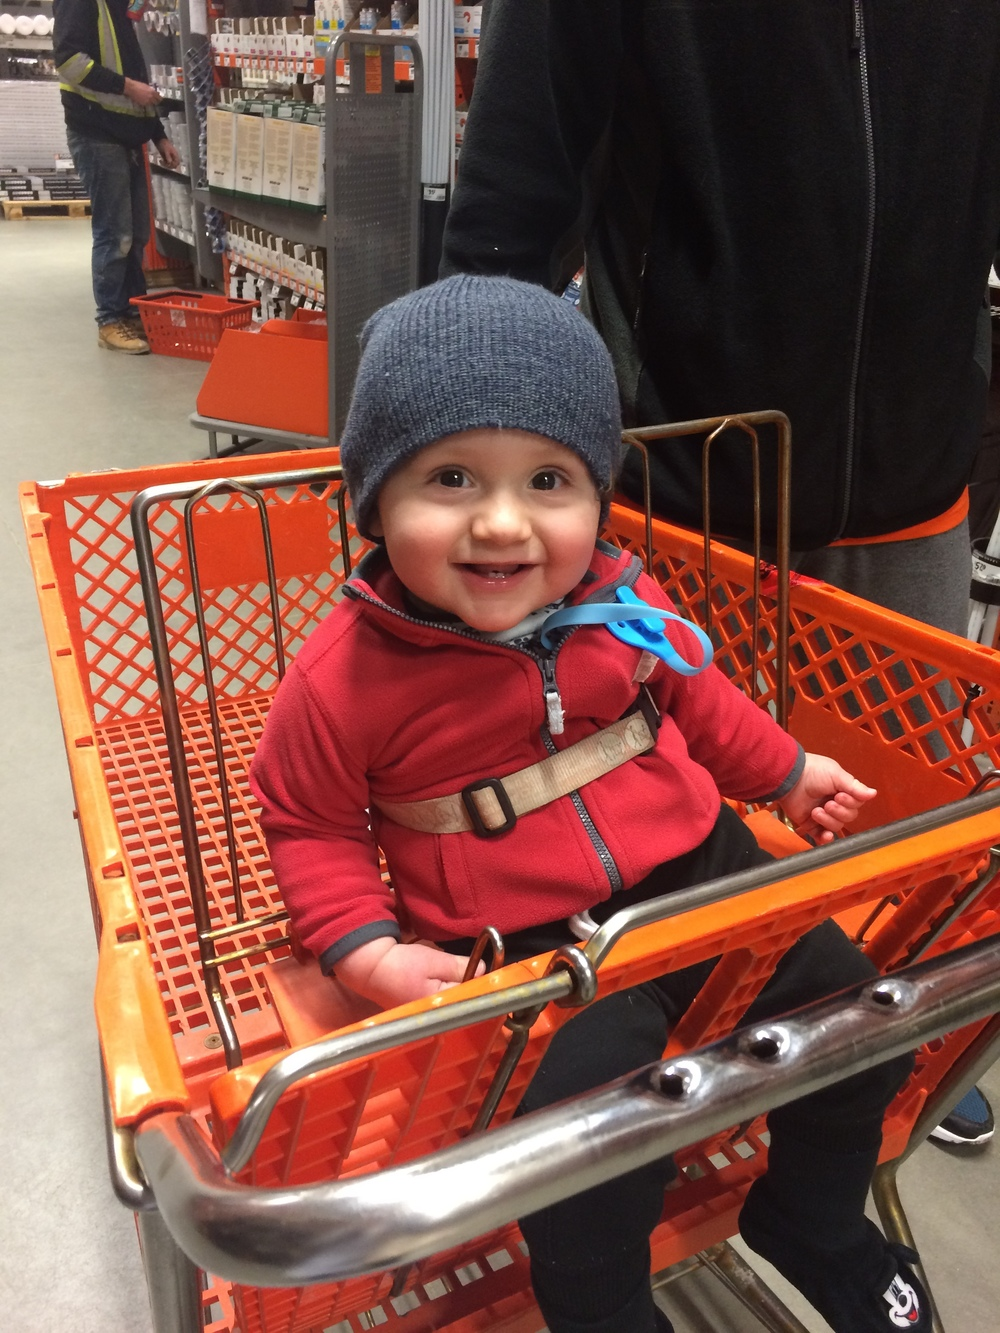 He will forever be a home renovation baby and a Home Depot customer.